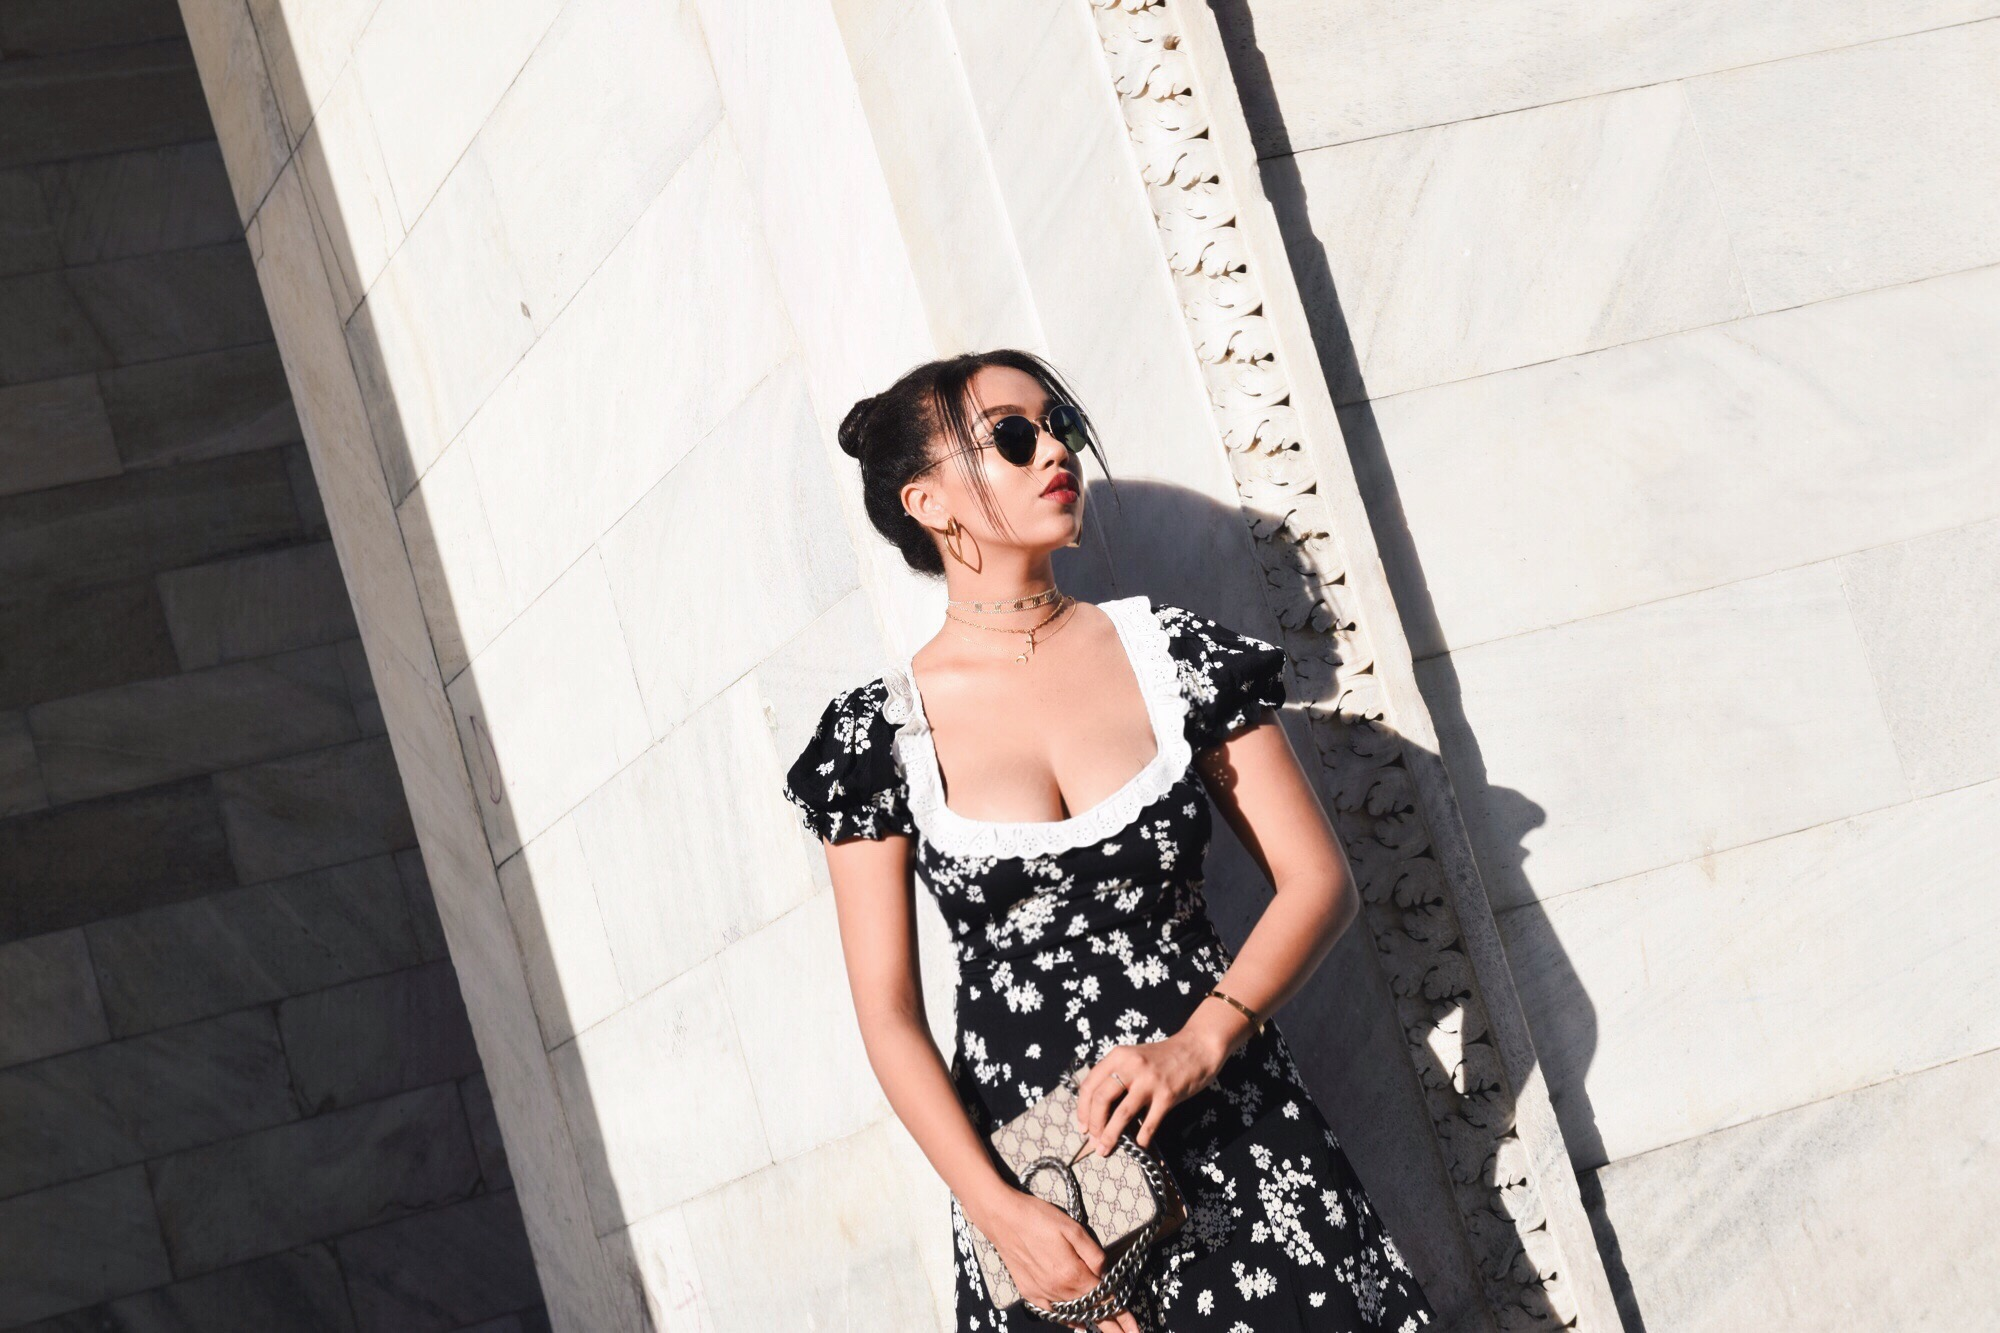 Arco Della Pace - Milan, Italy // For Love and Lemons Dolce Dress // Gucci Princetown Fur Slippers // Gucci Dionysus Nude Bag // The M Jewelers Monogram Choker // Nars Red Lipstick // Los Angeles Fashion Blogger Daphne Blunt Travel Diary: To Style, With Love